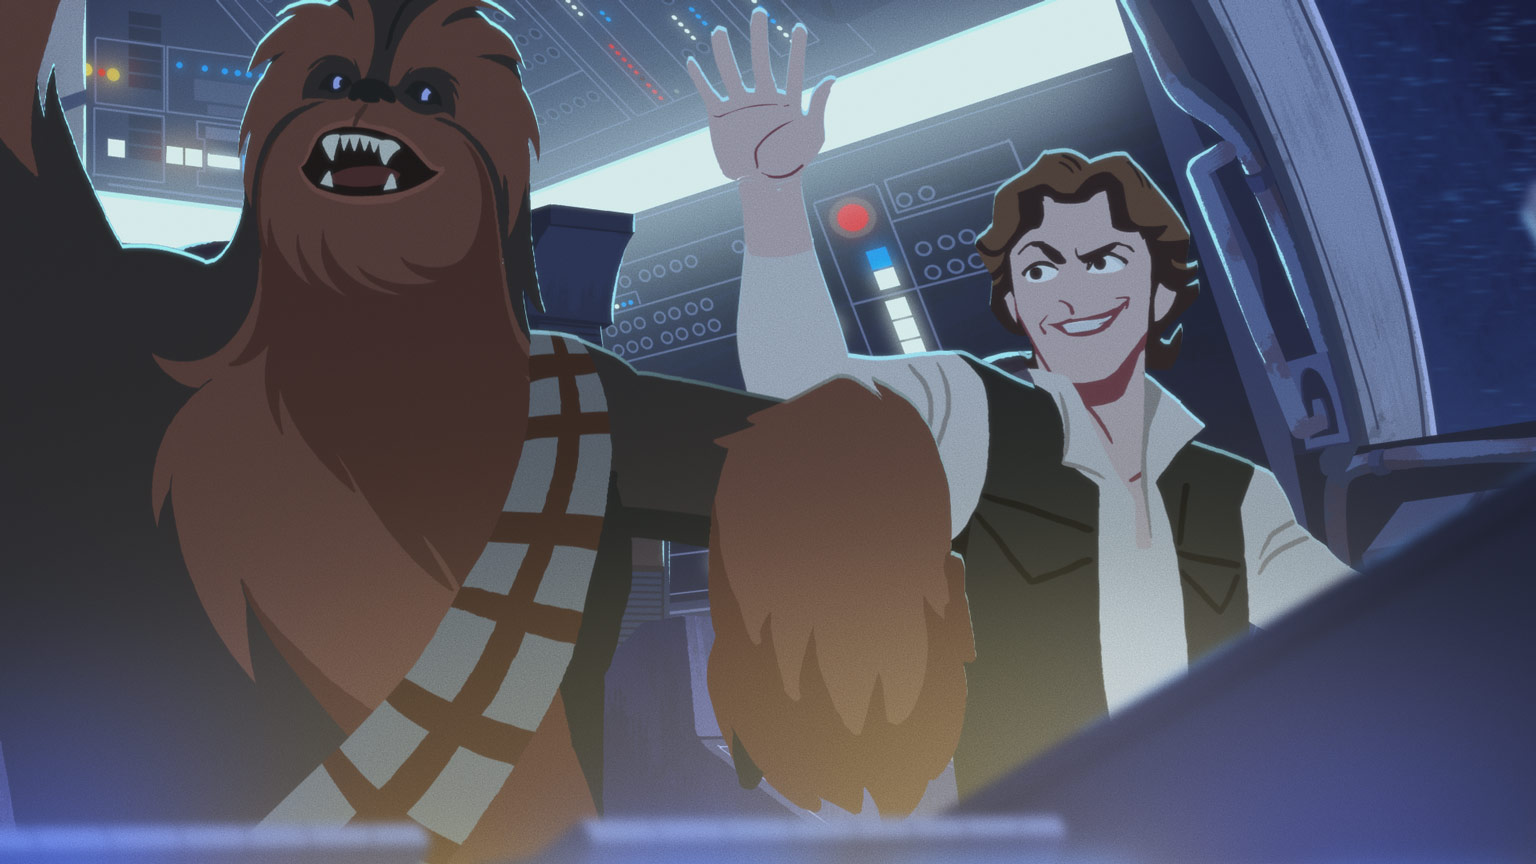 Chewbacca and Han Solo confidently gesturing from the cockpit of the Millennium Falcon